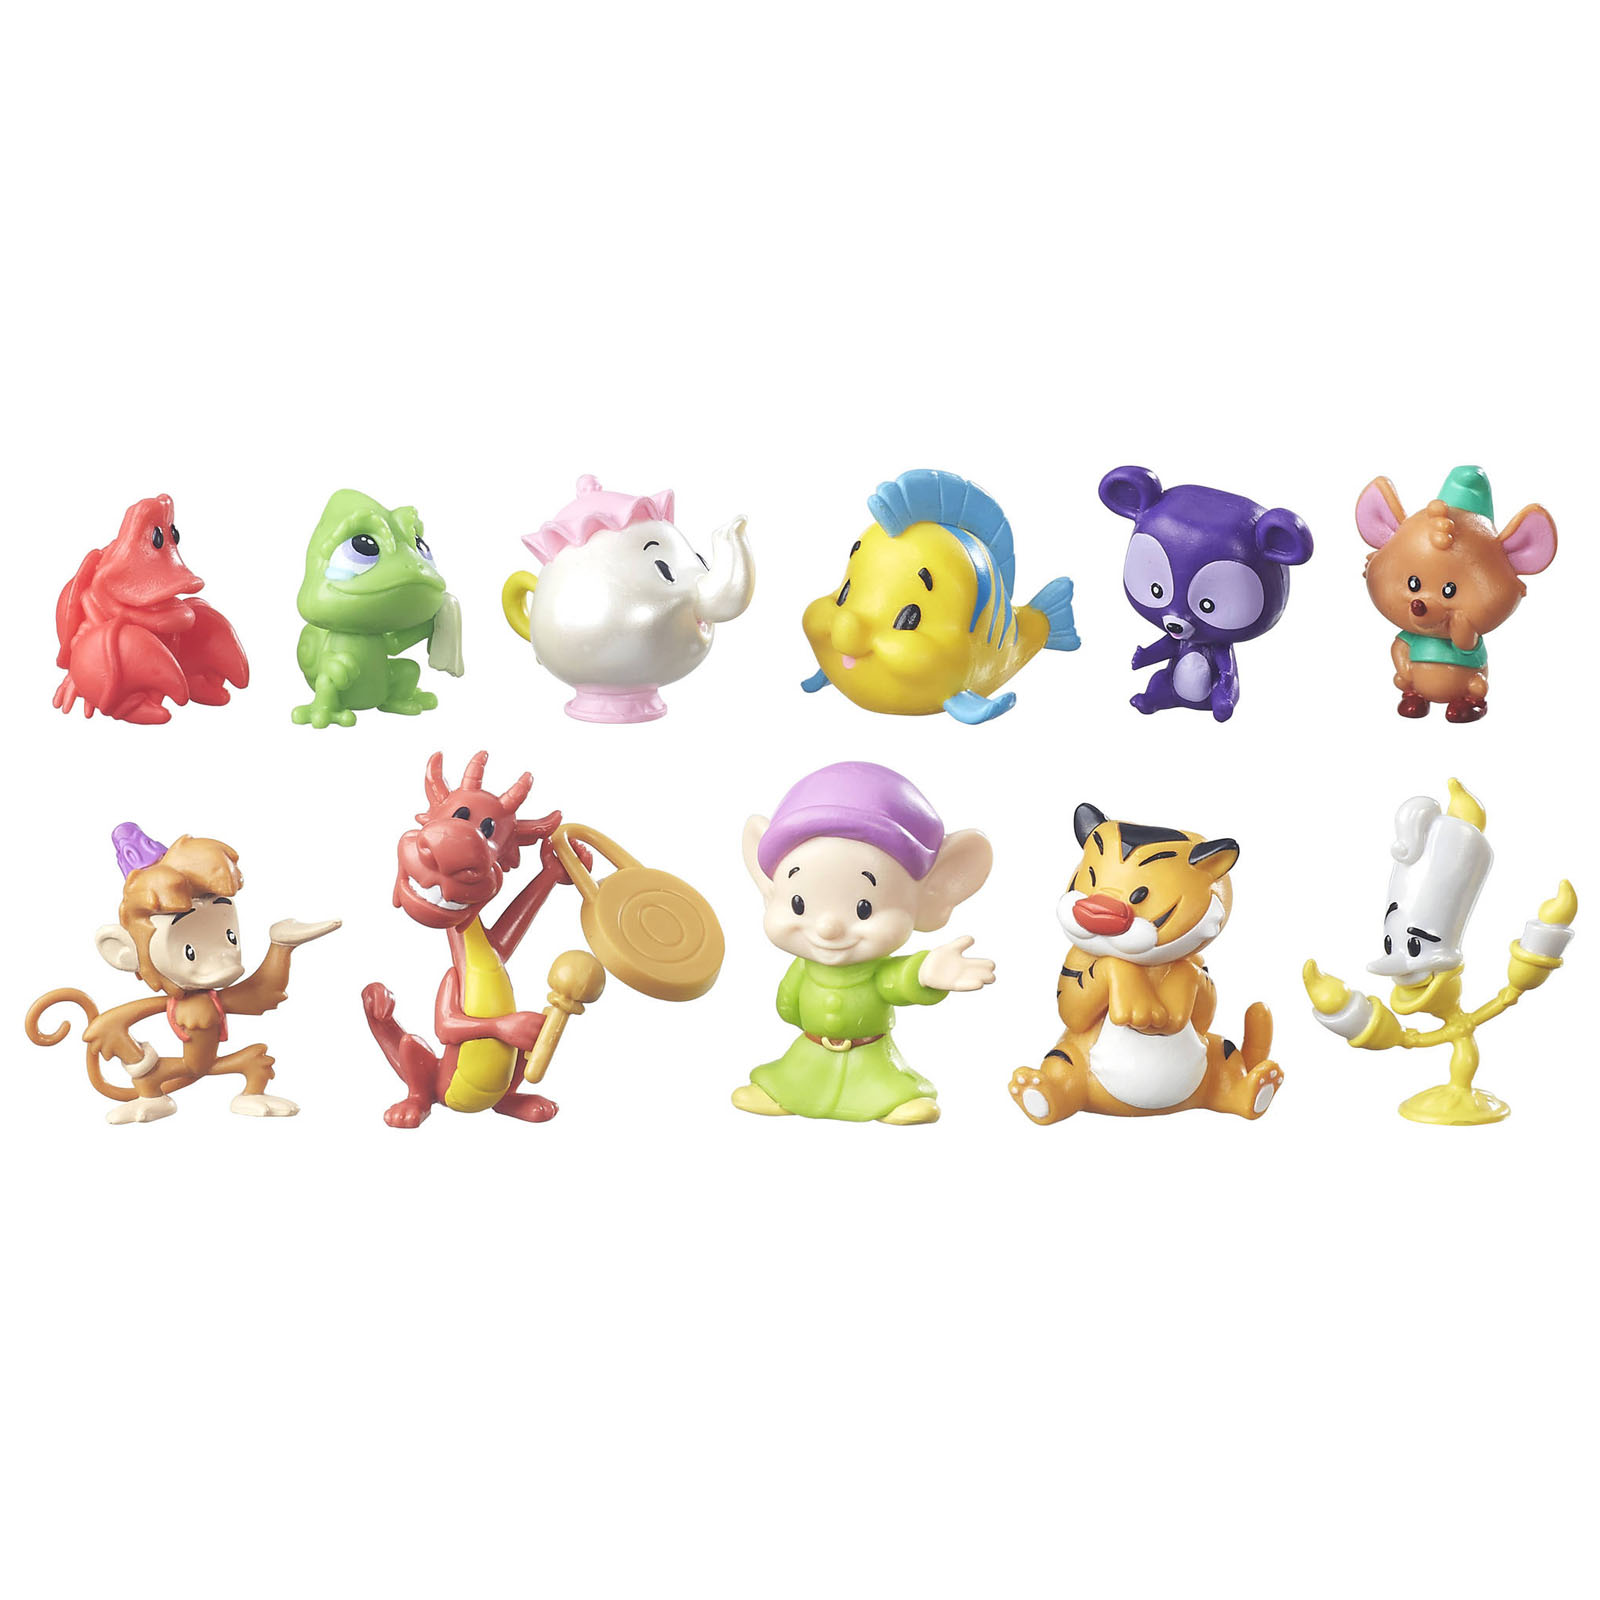 Disney Princess Little Kingdom Royal Friends Figurine Playset Pl